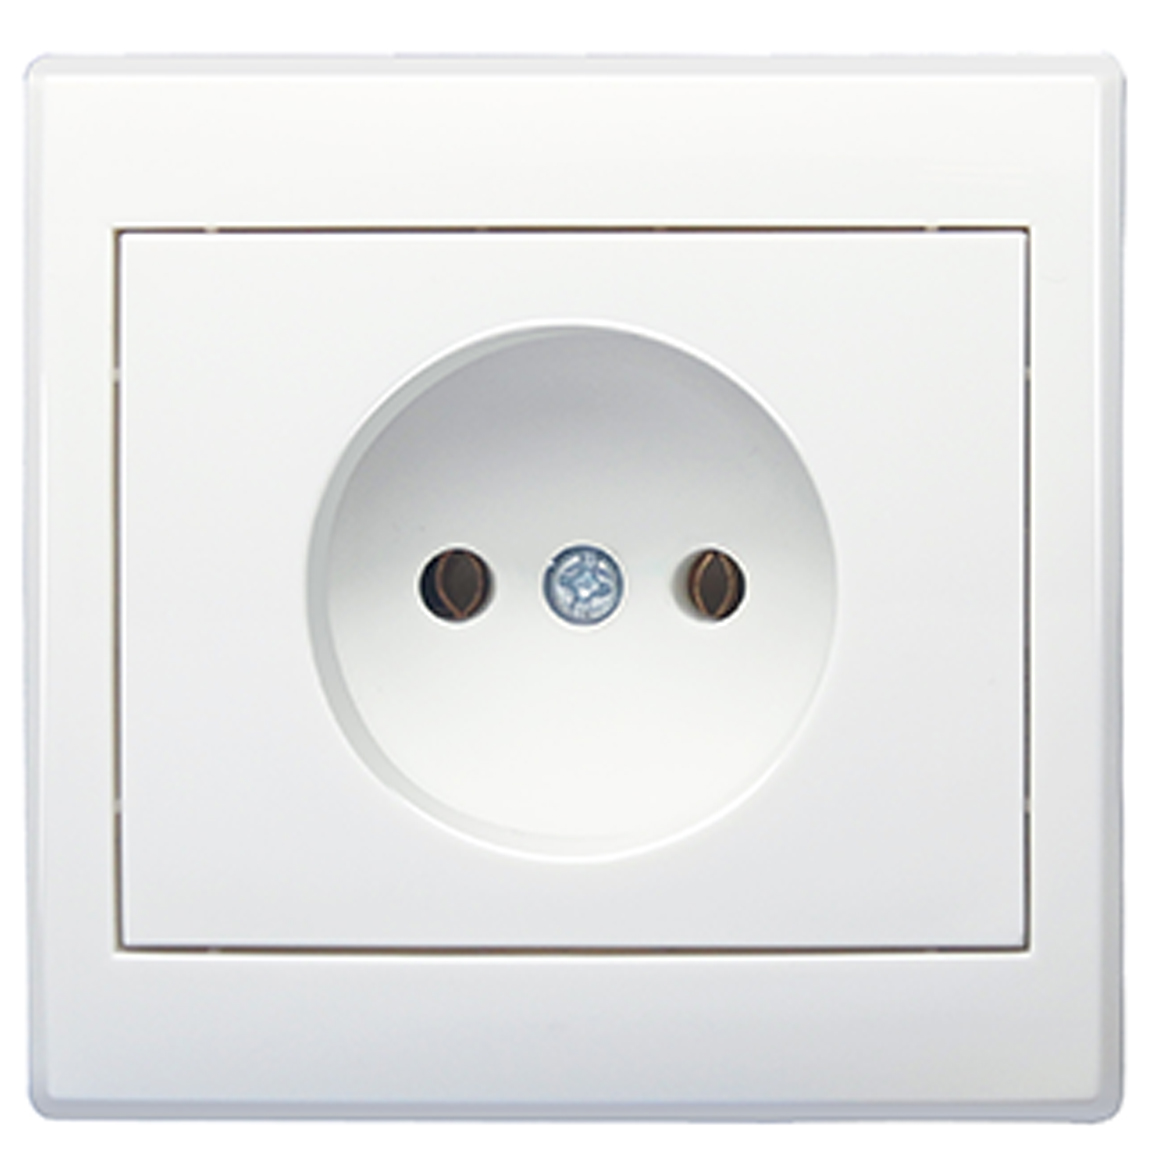 http://wallswitch.com/product/european-standard/rex-series/